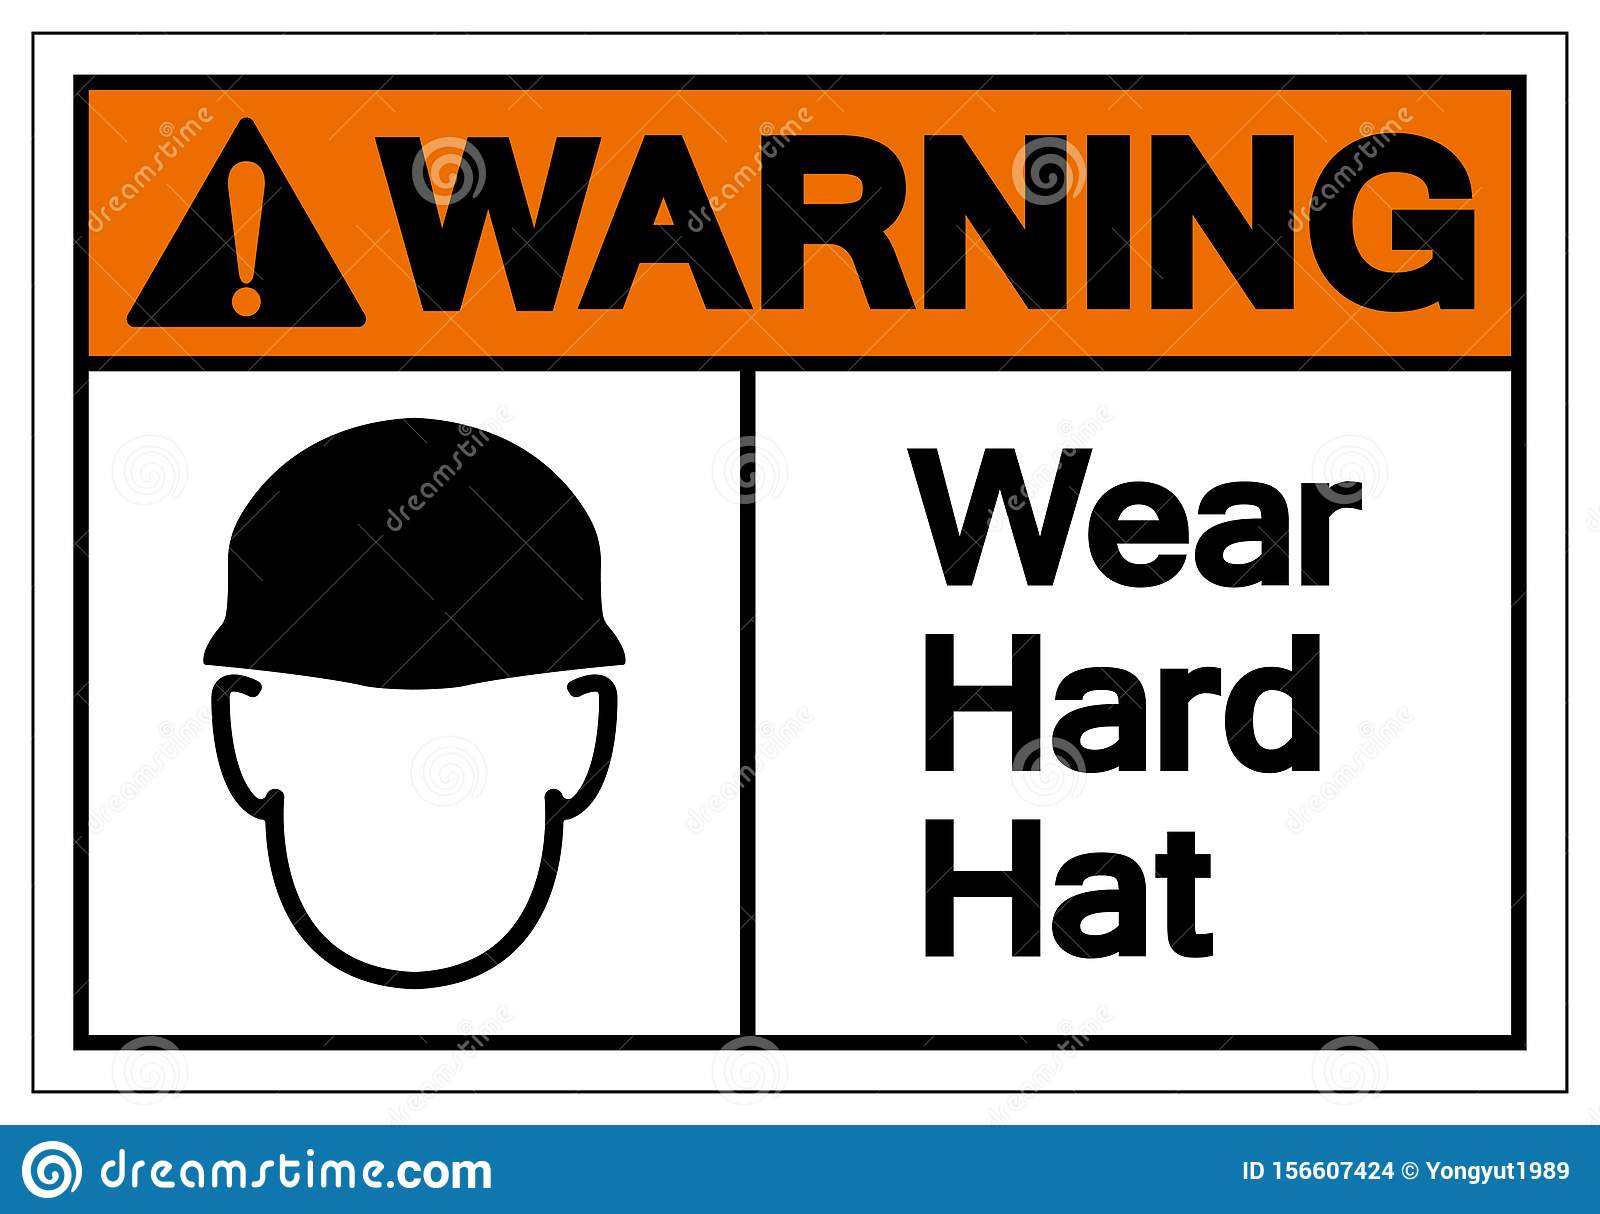 Warning Wear Hard Hat Symbol Sign, Vector Illustration, Isolate On White Background Label. EPS10